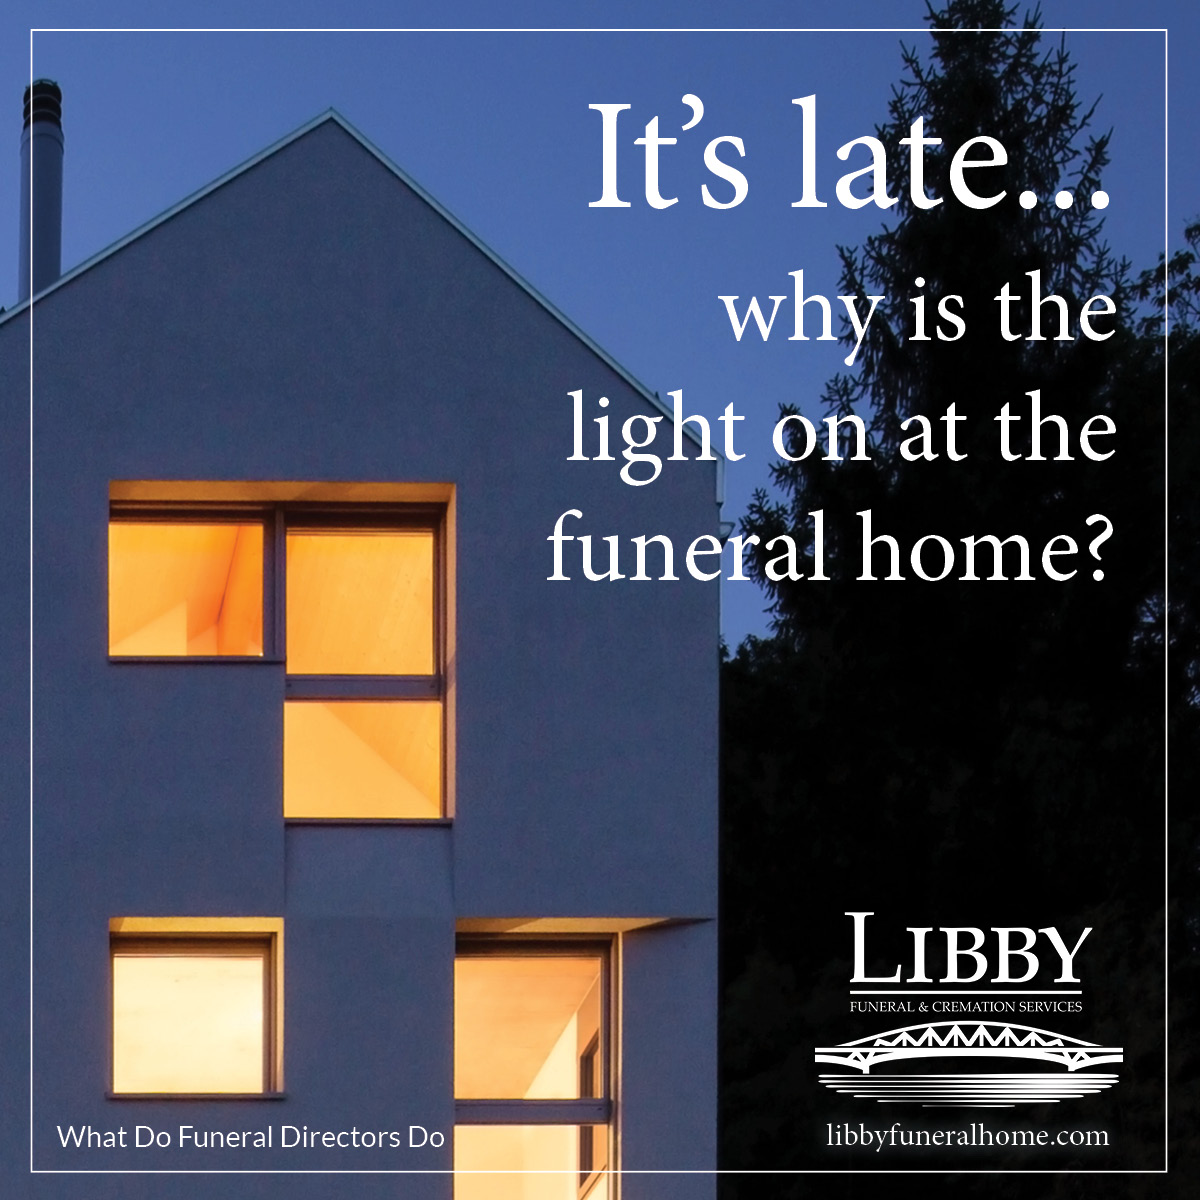 Ever wonder what funeral directors do?